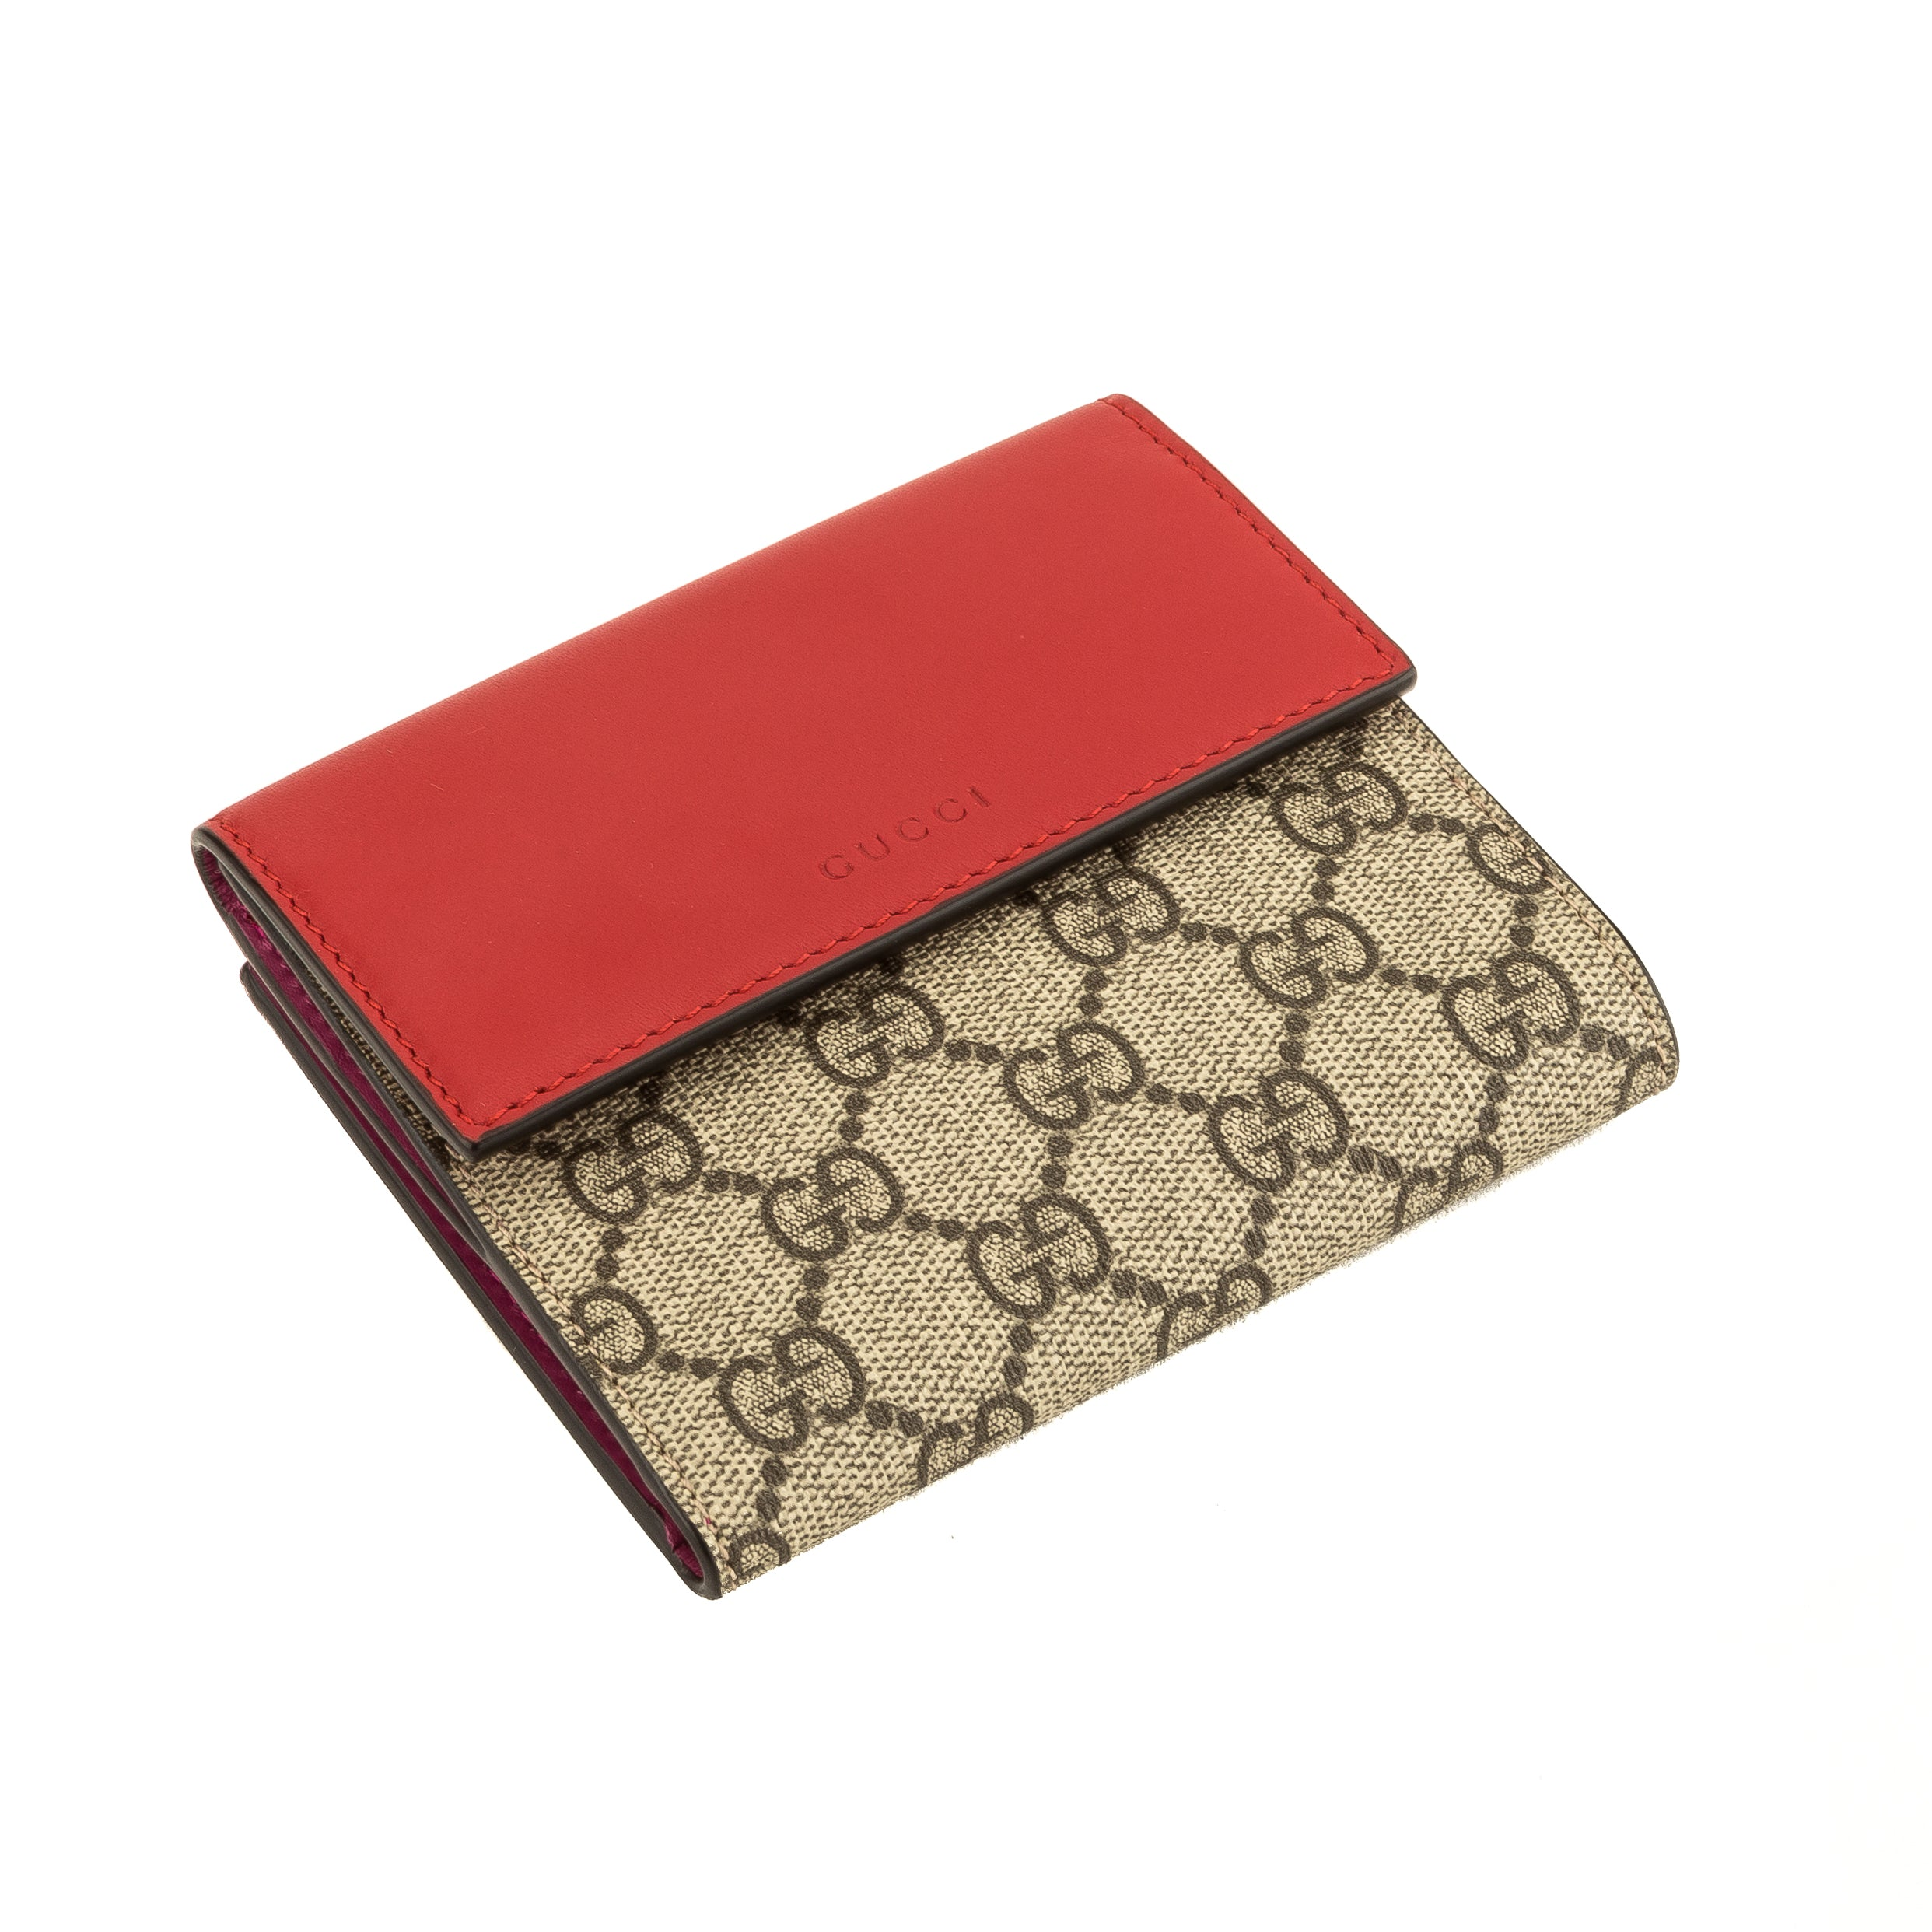 7ad7c1fe4181 Gucci Red and Fuchsia Leather GG Supreme Canvas French Flap Wallet  (4083002) - 4083002 | LuxeDH